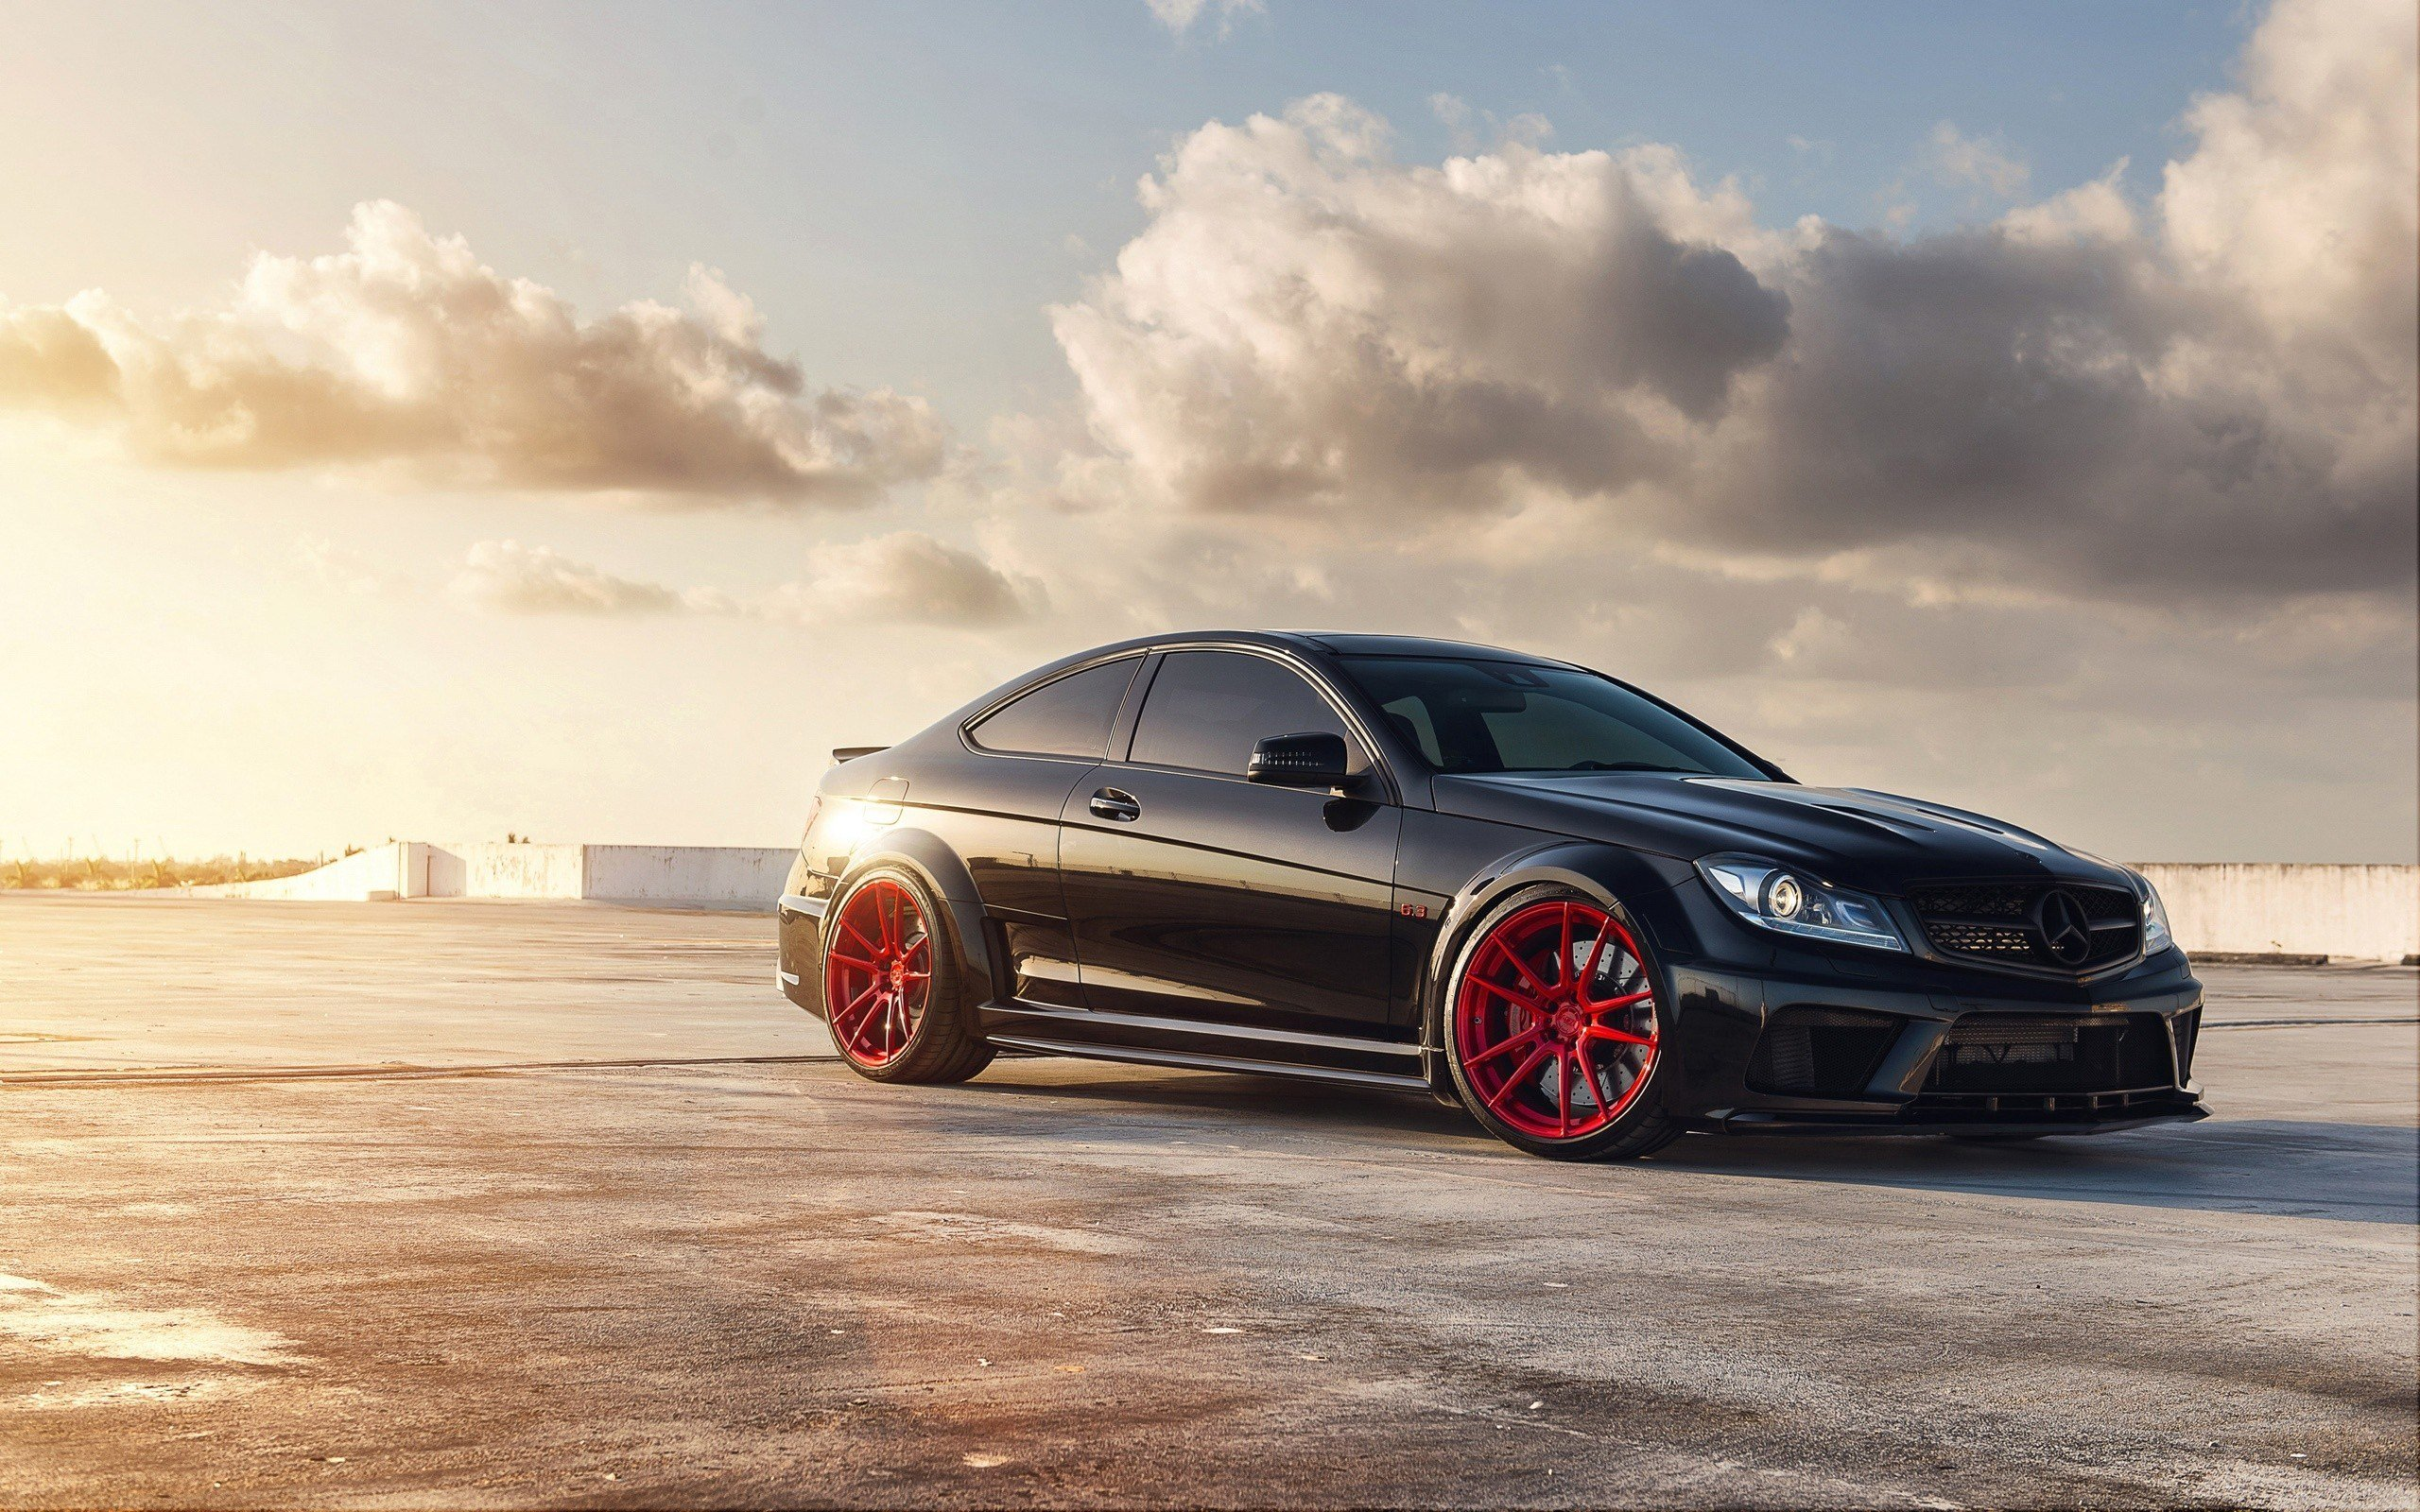 Latest Mercedes Benz C63 Amg Wallpapers Hd Wallpapers Id 13480 Free Download